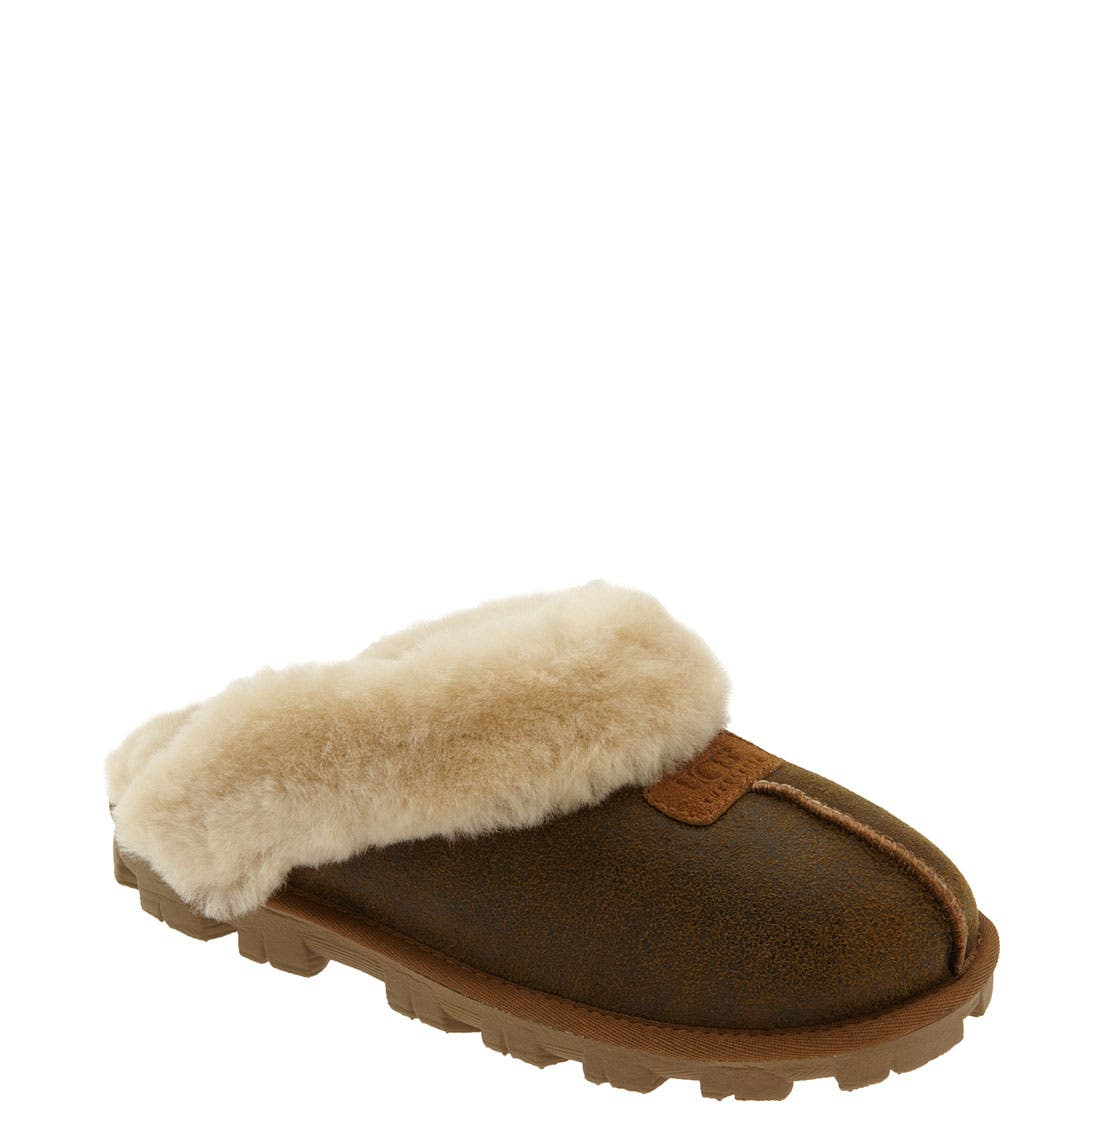 Main Image - UGG® Genuine Shearling Slipper (Women)